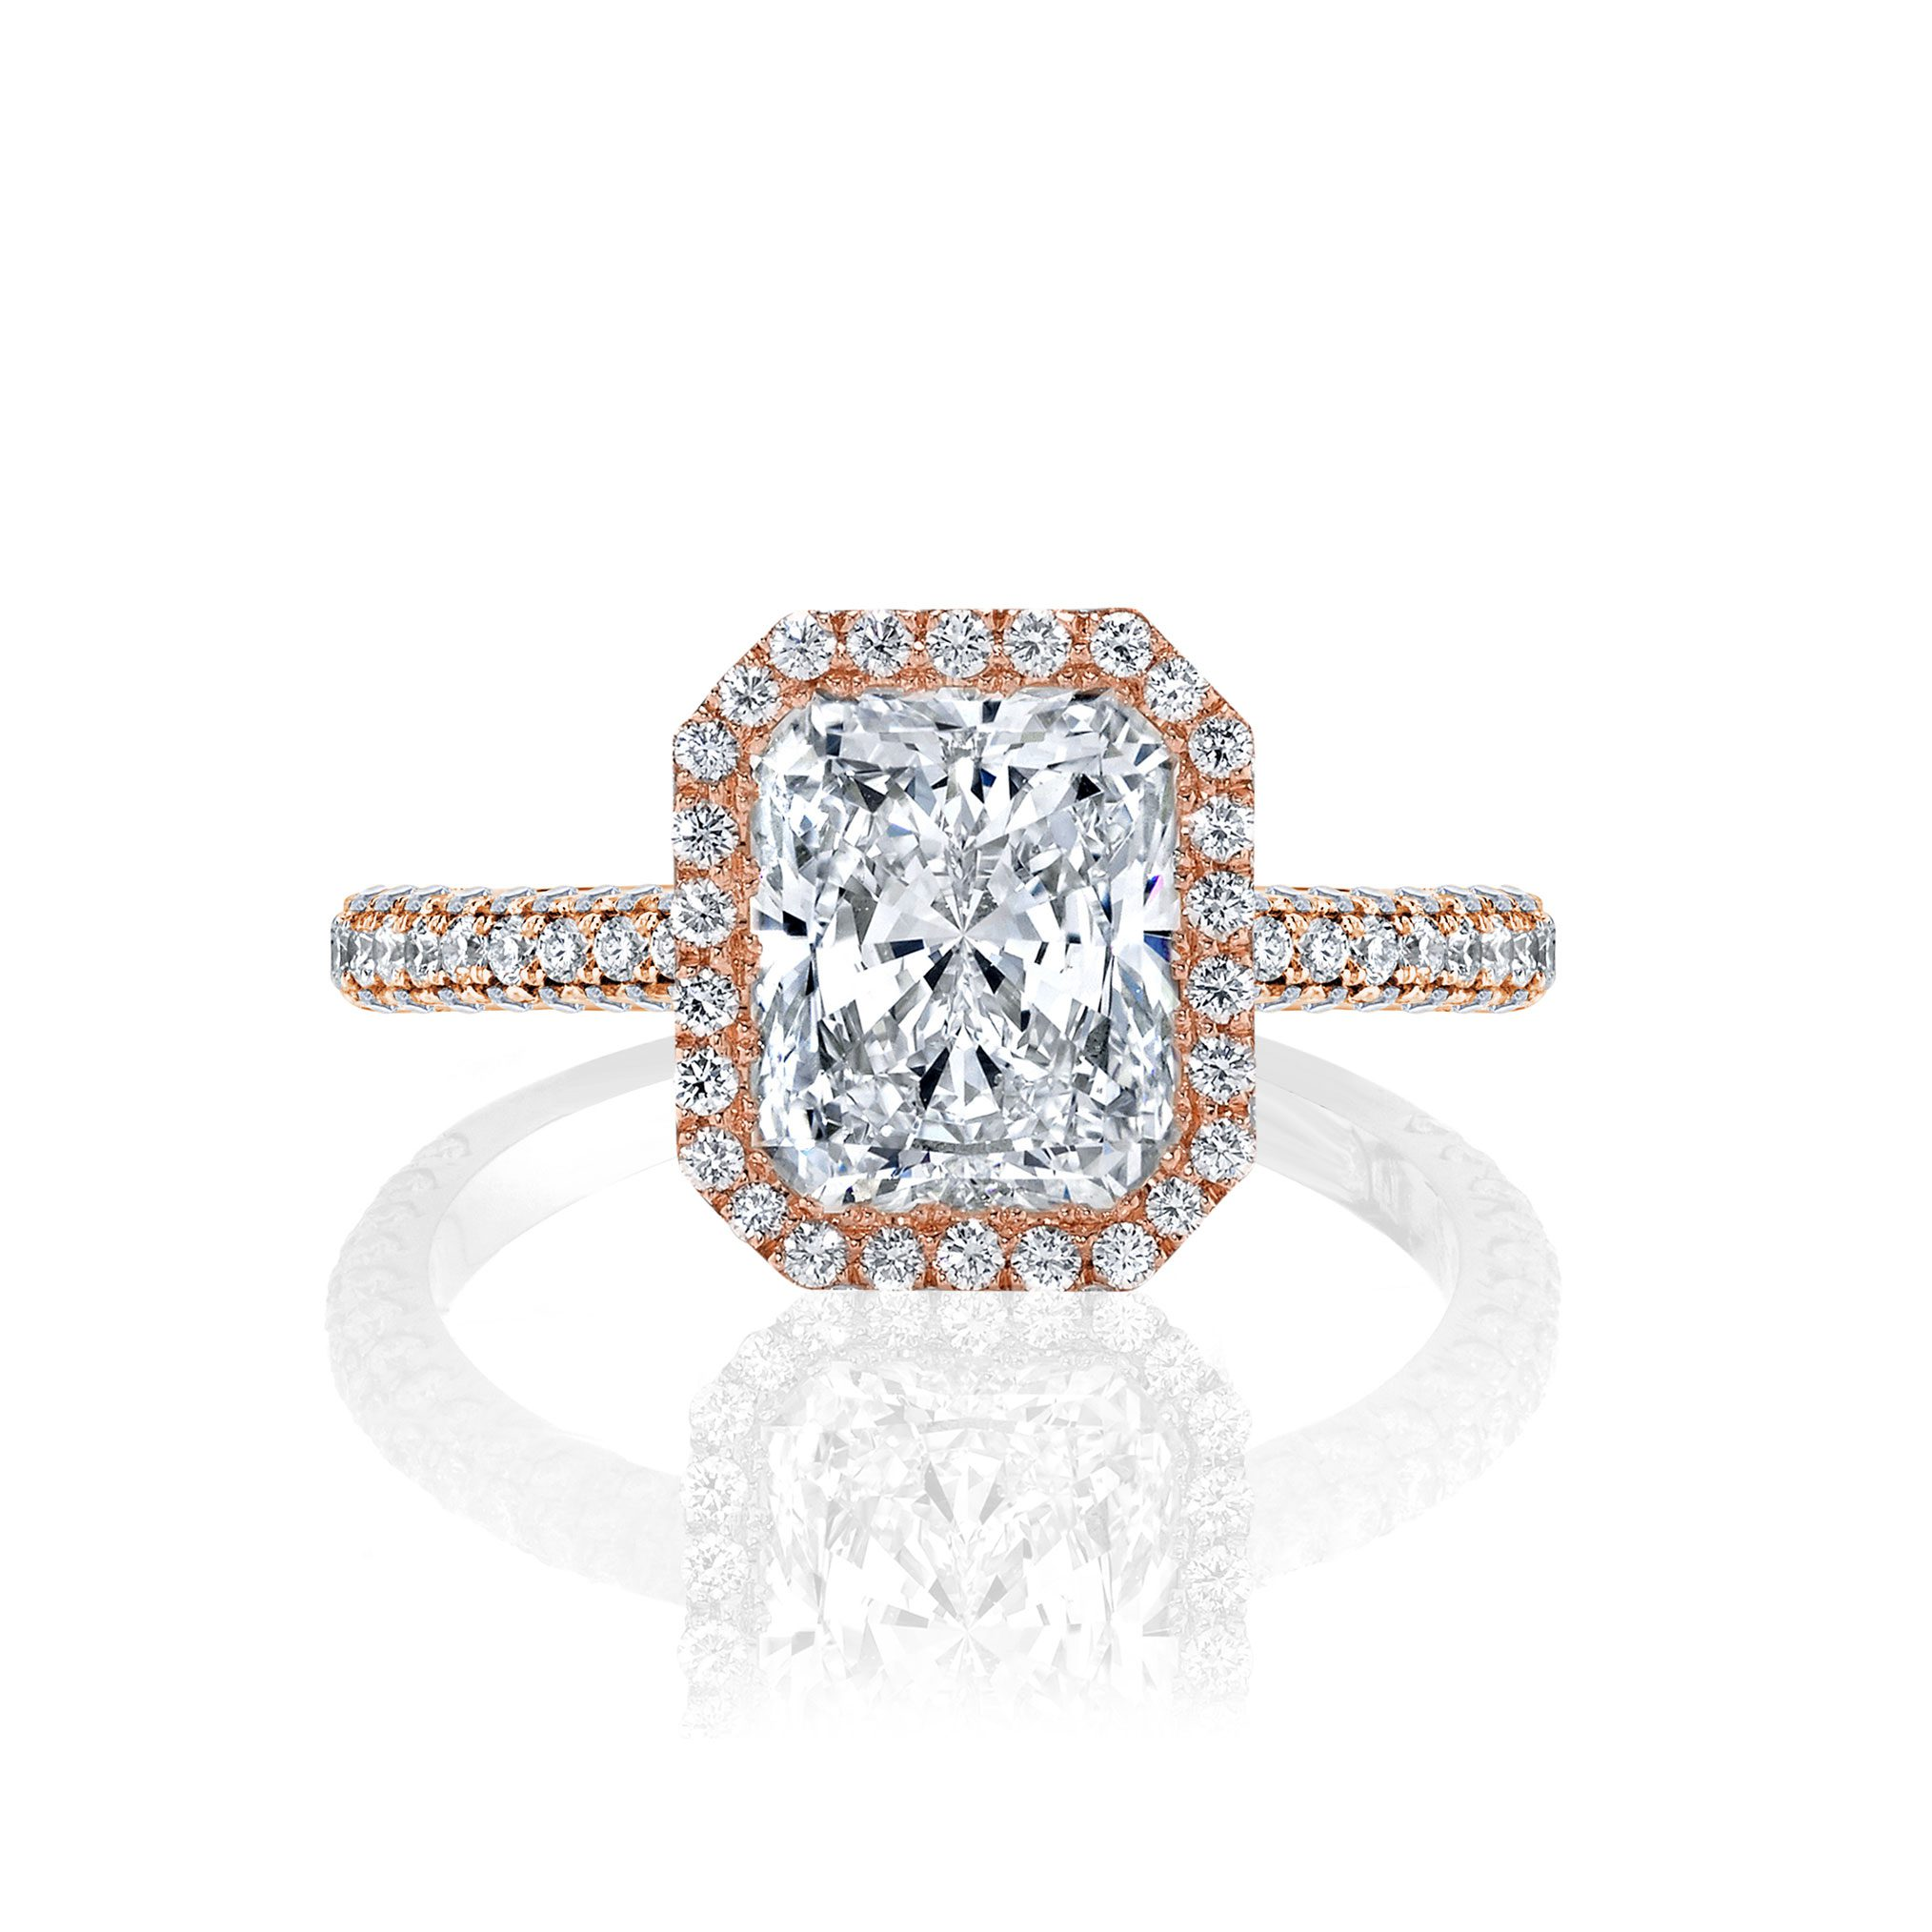 Jacqueline Seamless Halo® Engagement Ring with Lab Grown Radiant Cut Diamond in 18k rose gold